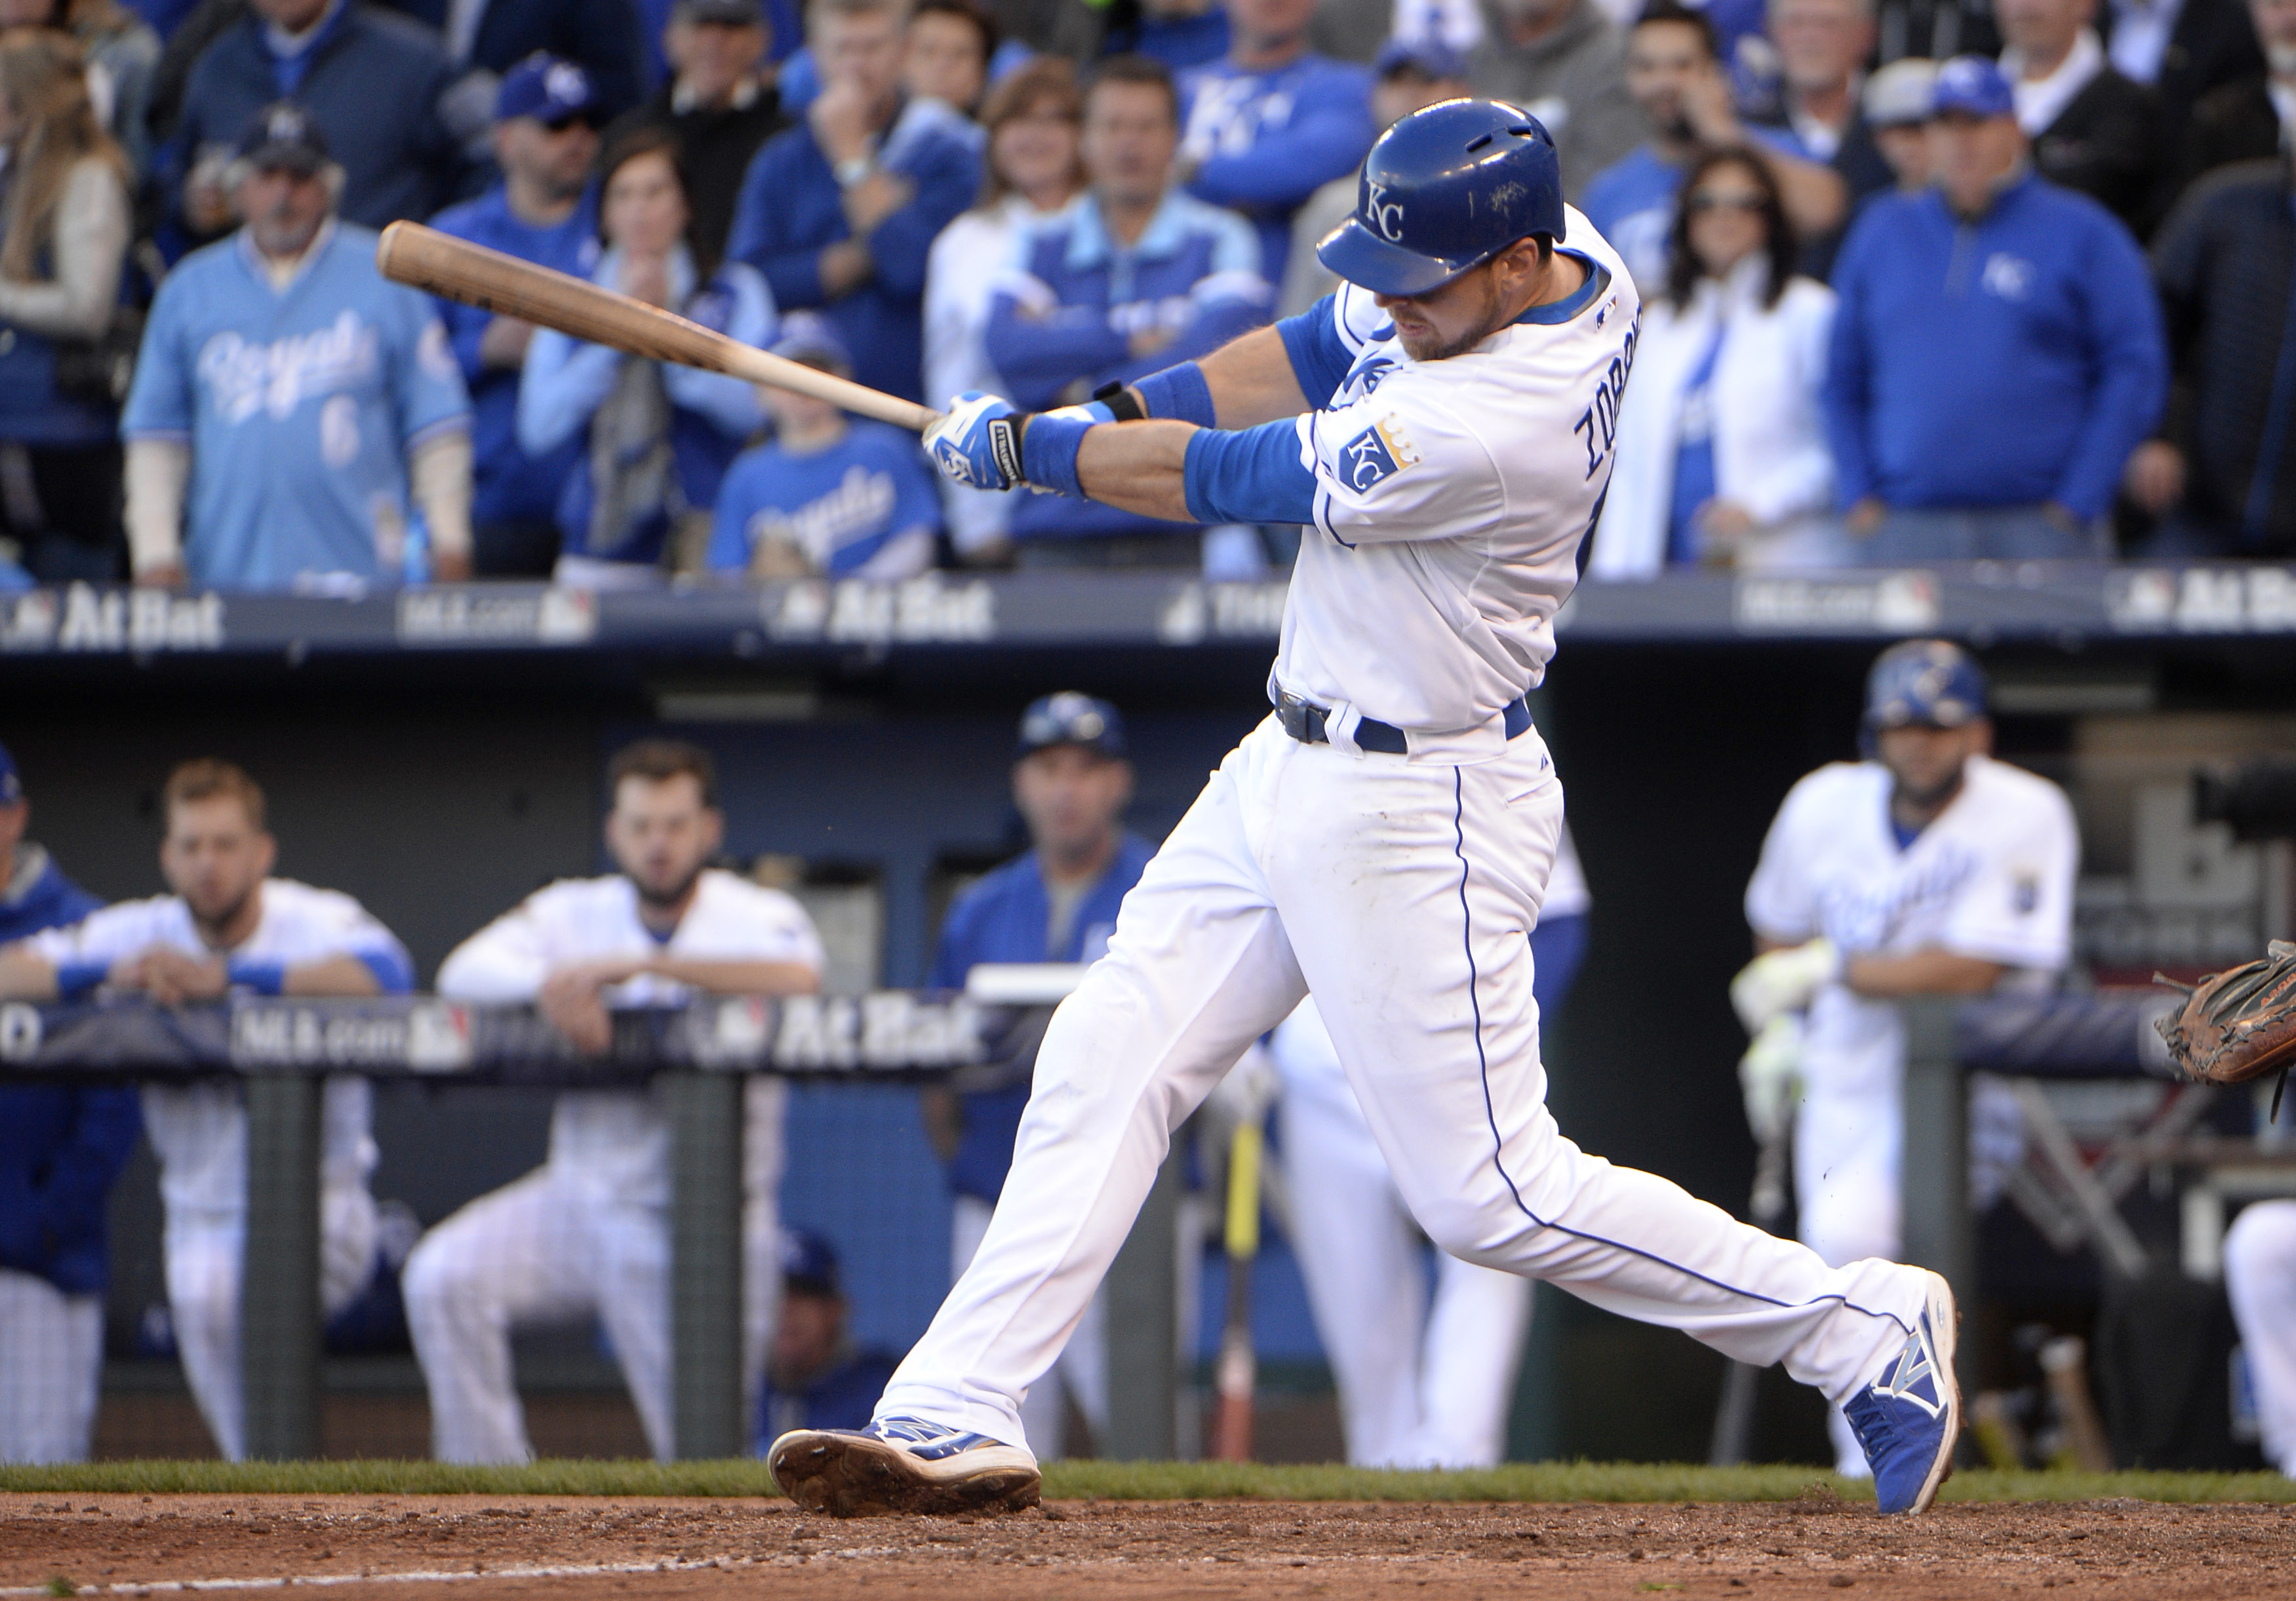 Ben Zobrist will be one of many moved free agents not eligible to receive a qualifying offer.